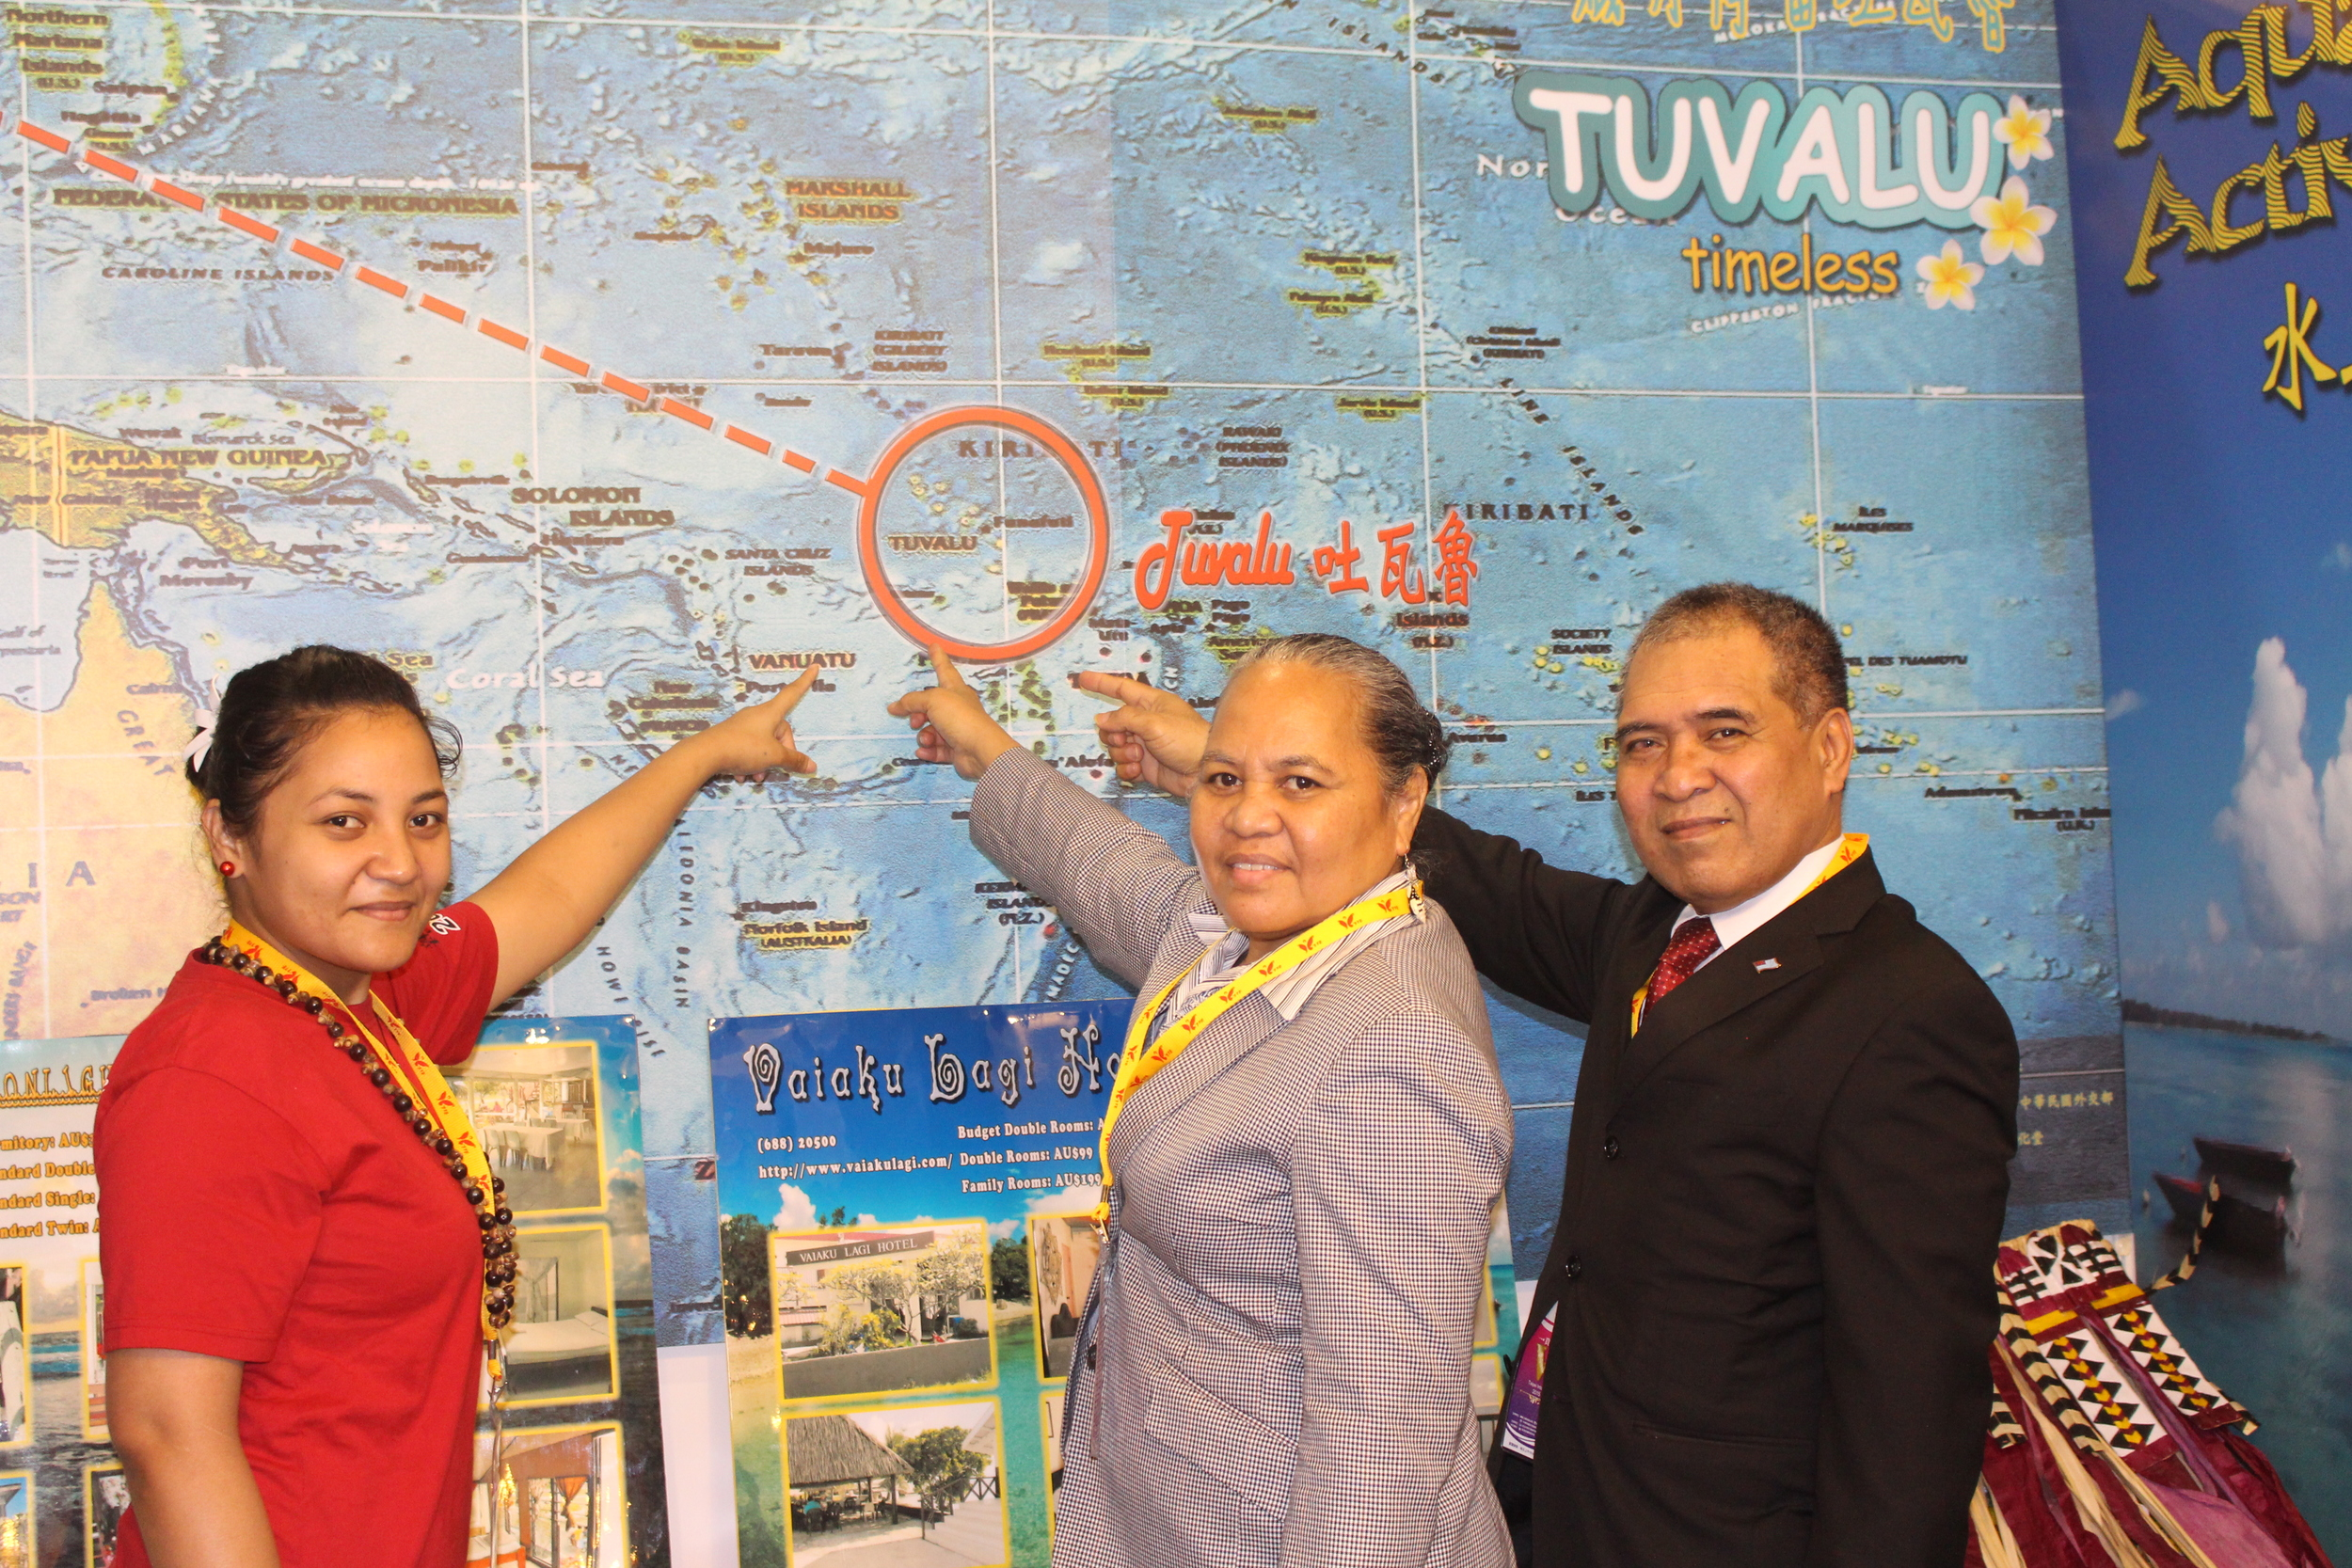 Ambassador and Madame Taupo with Tuvaluan student Sose Sio in the Tuvalu Booth